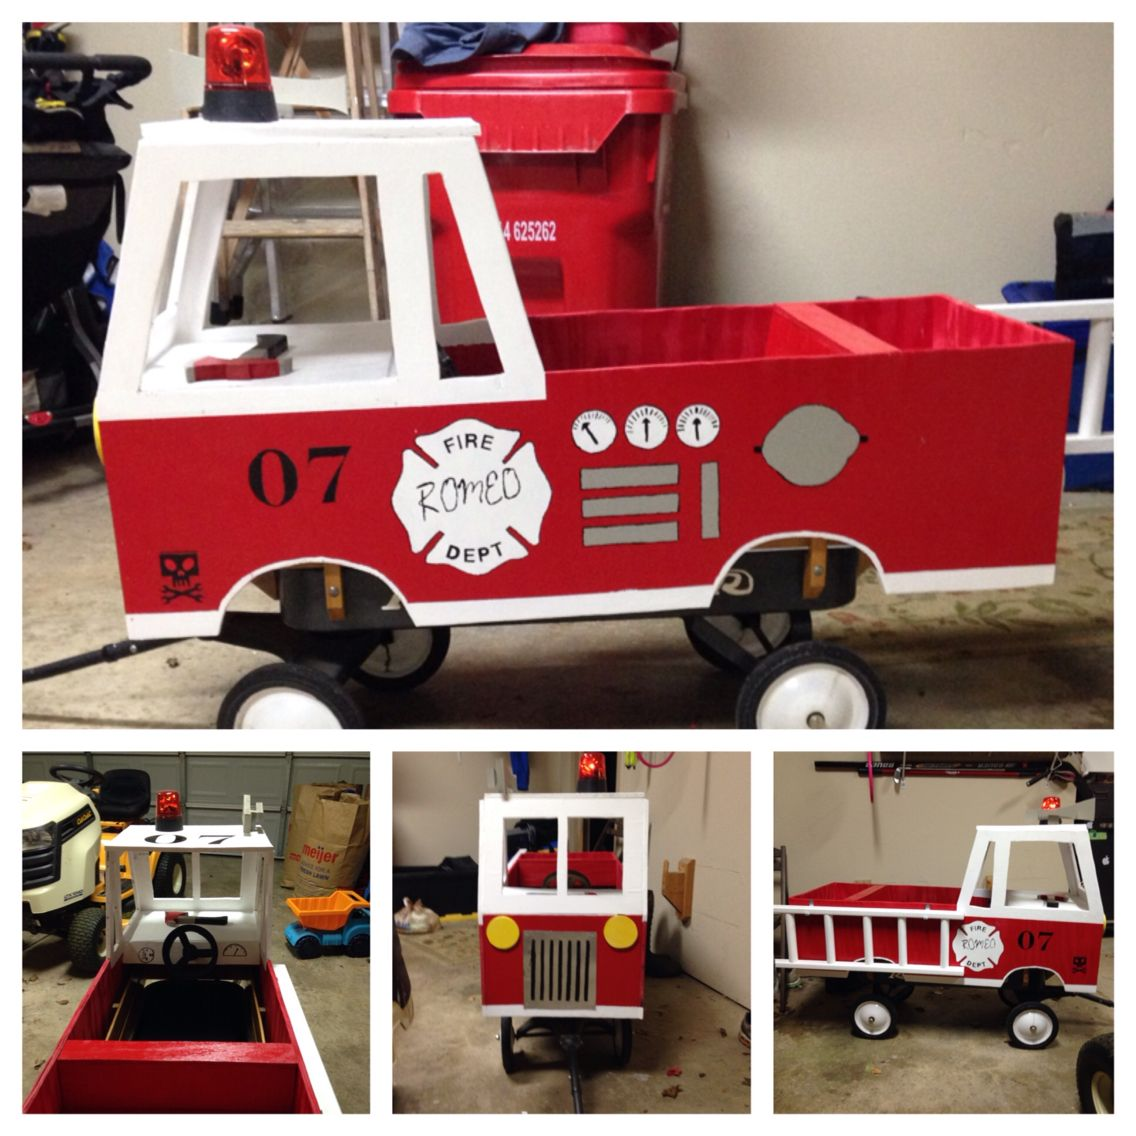 converted wagon into fire engine for halloween plywood shell goes over radio flyer - Kids Halloween Radio